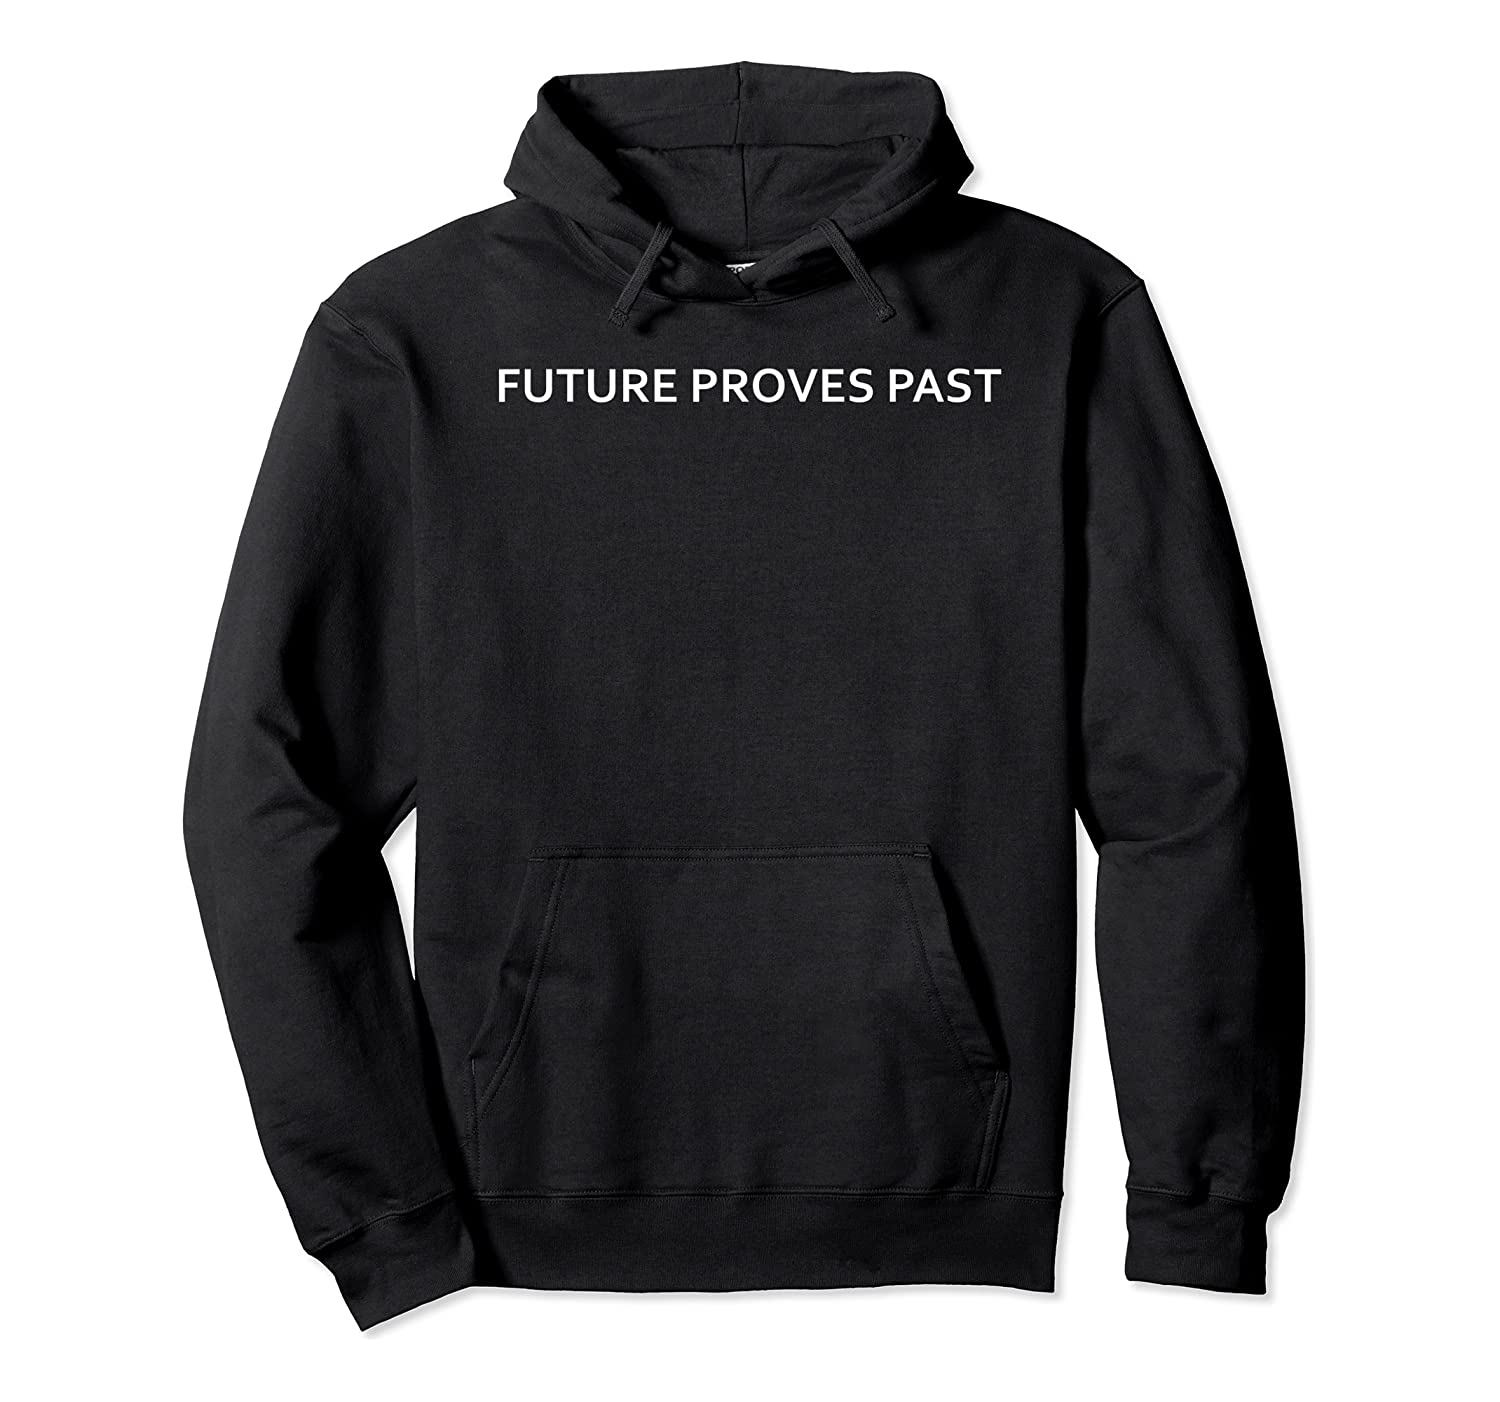 Qanon Q Future Proves Past Novelty Conspiracy Anons Shirts Unisex Pullover Hoodie